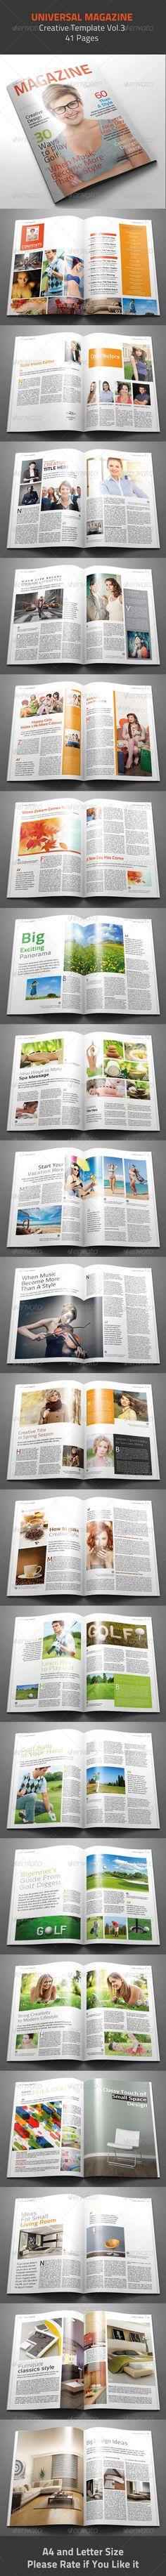 Universal Magazine Template InDesign INDD. Download here : http://graphicriver.net/item/universal-magazine-template/4793470?s_rank=1772&ref=yinkira